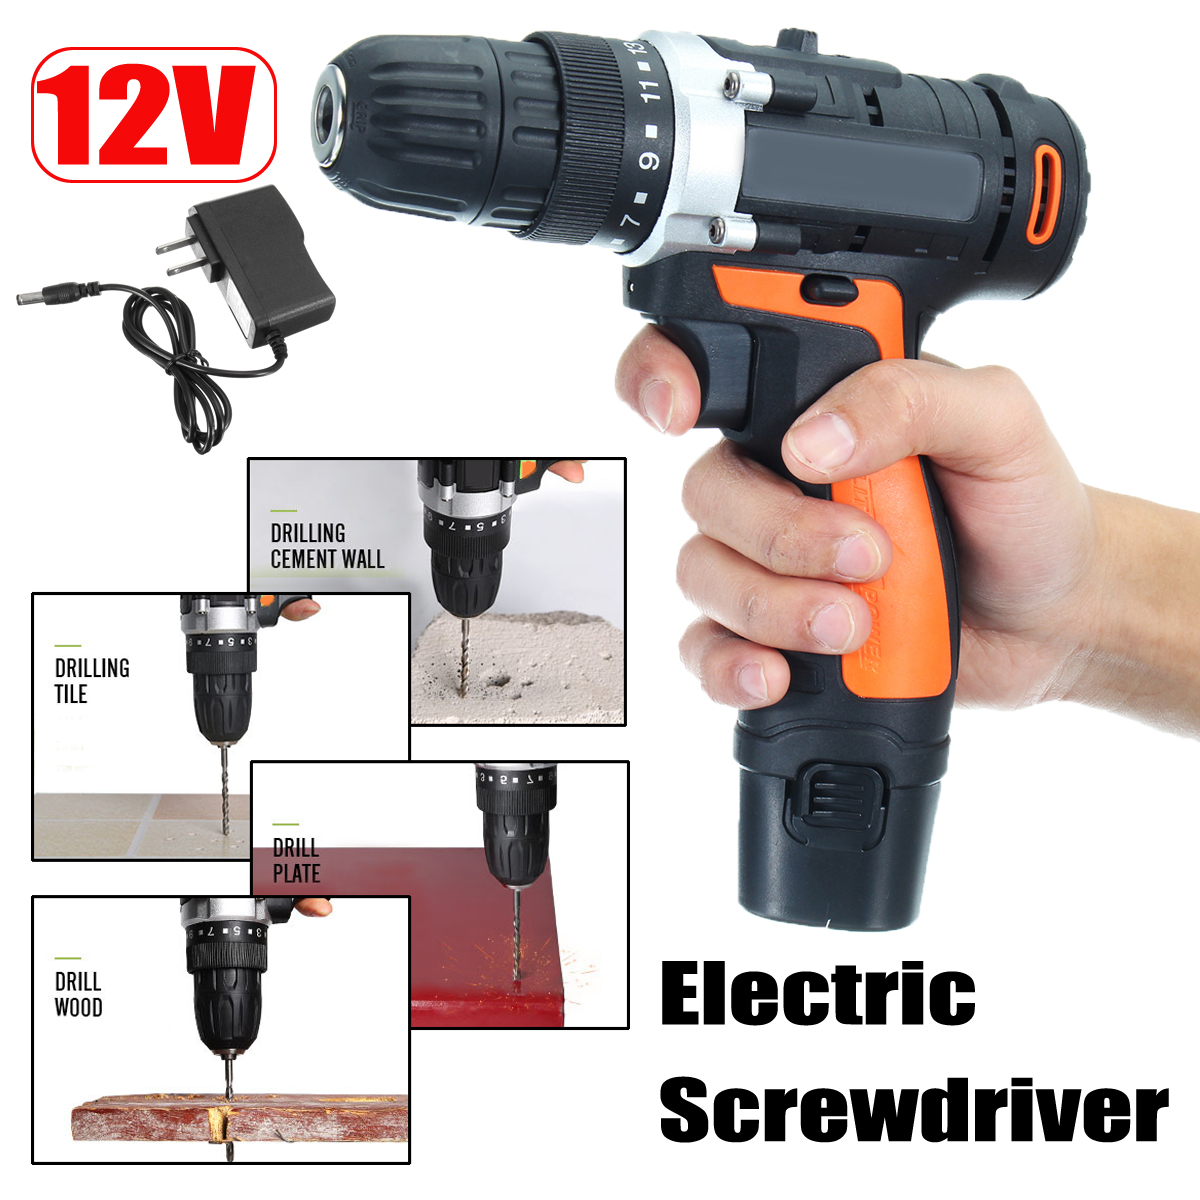 12V 3900mA Rechargeable Lithium-Ion Battery Electric Hammer Electric Screwdriver Power Drill